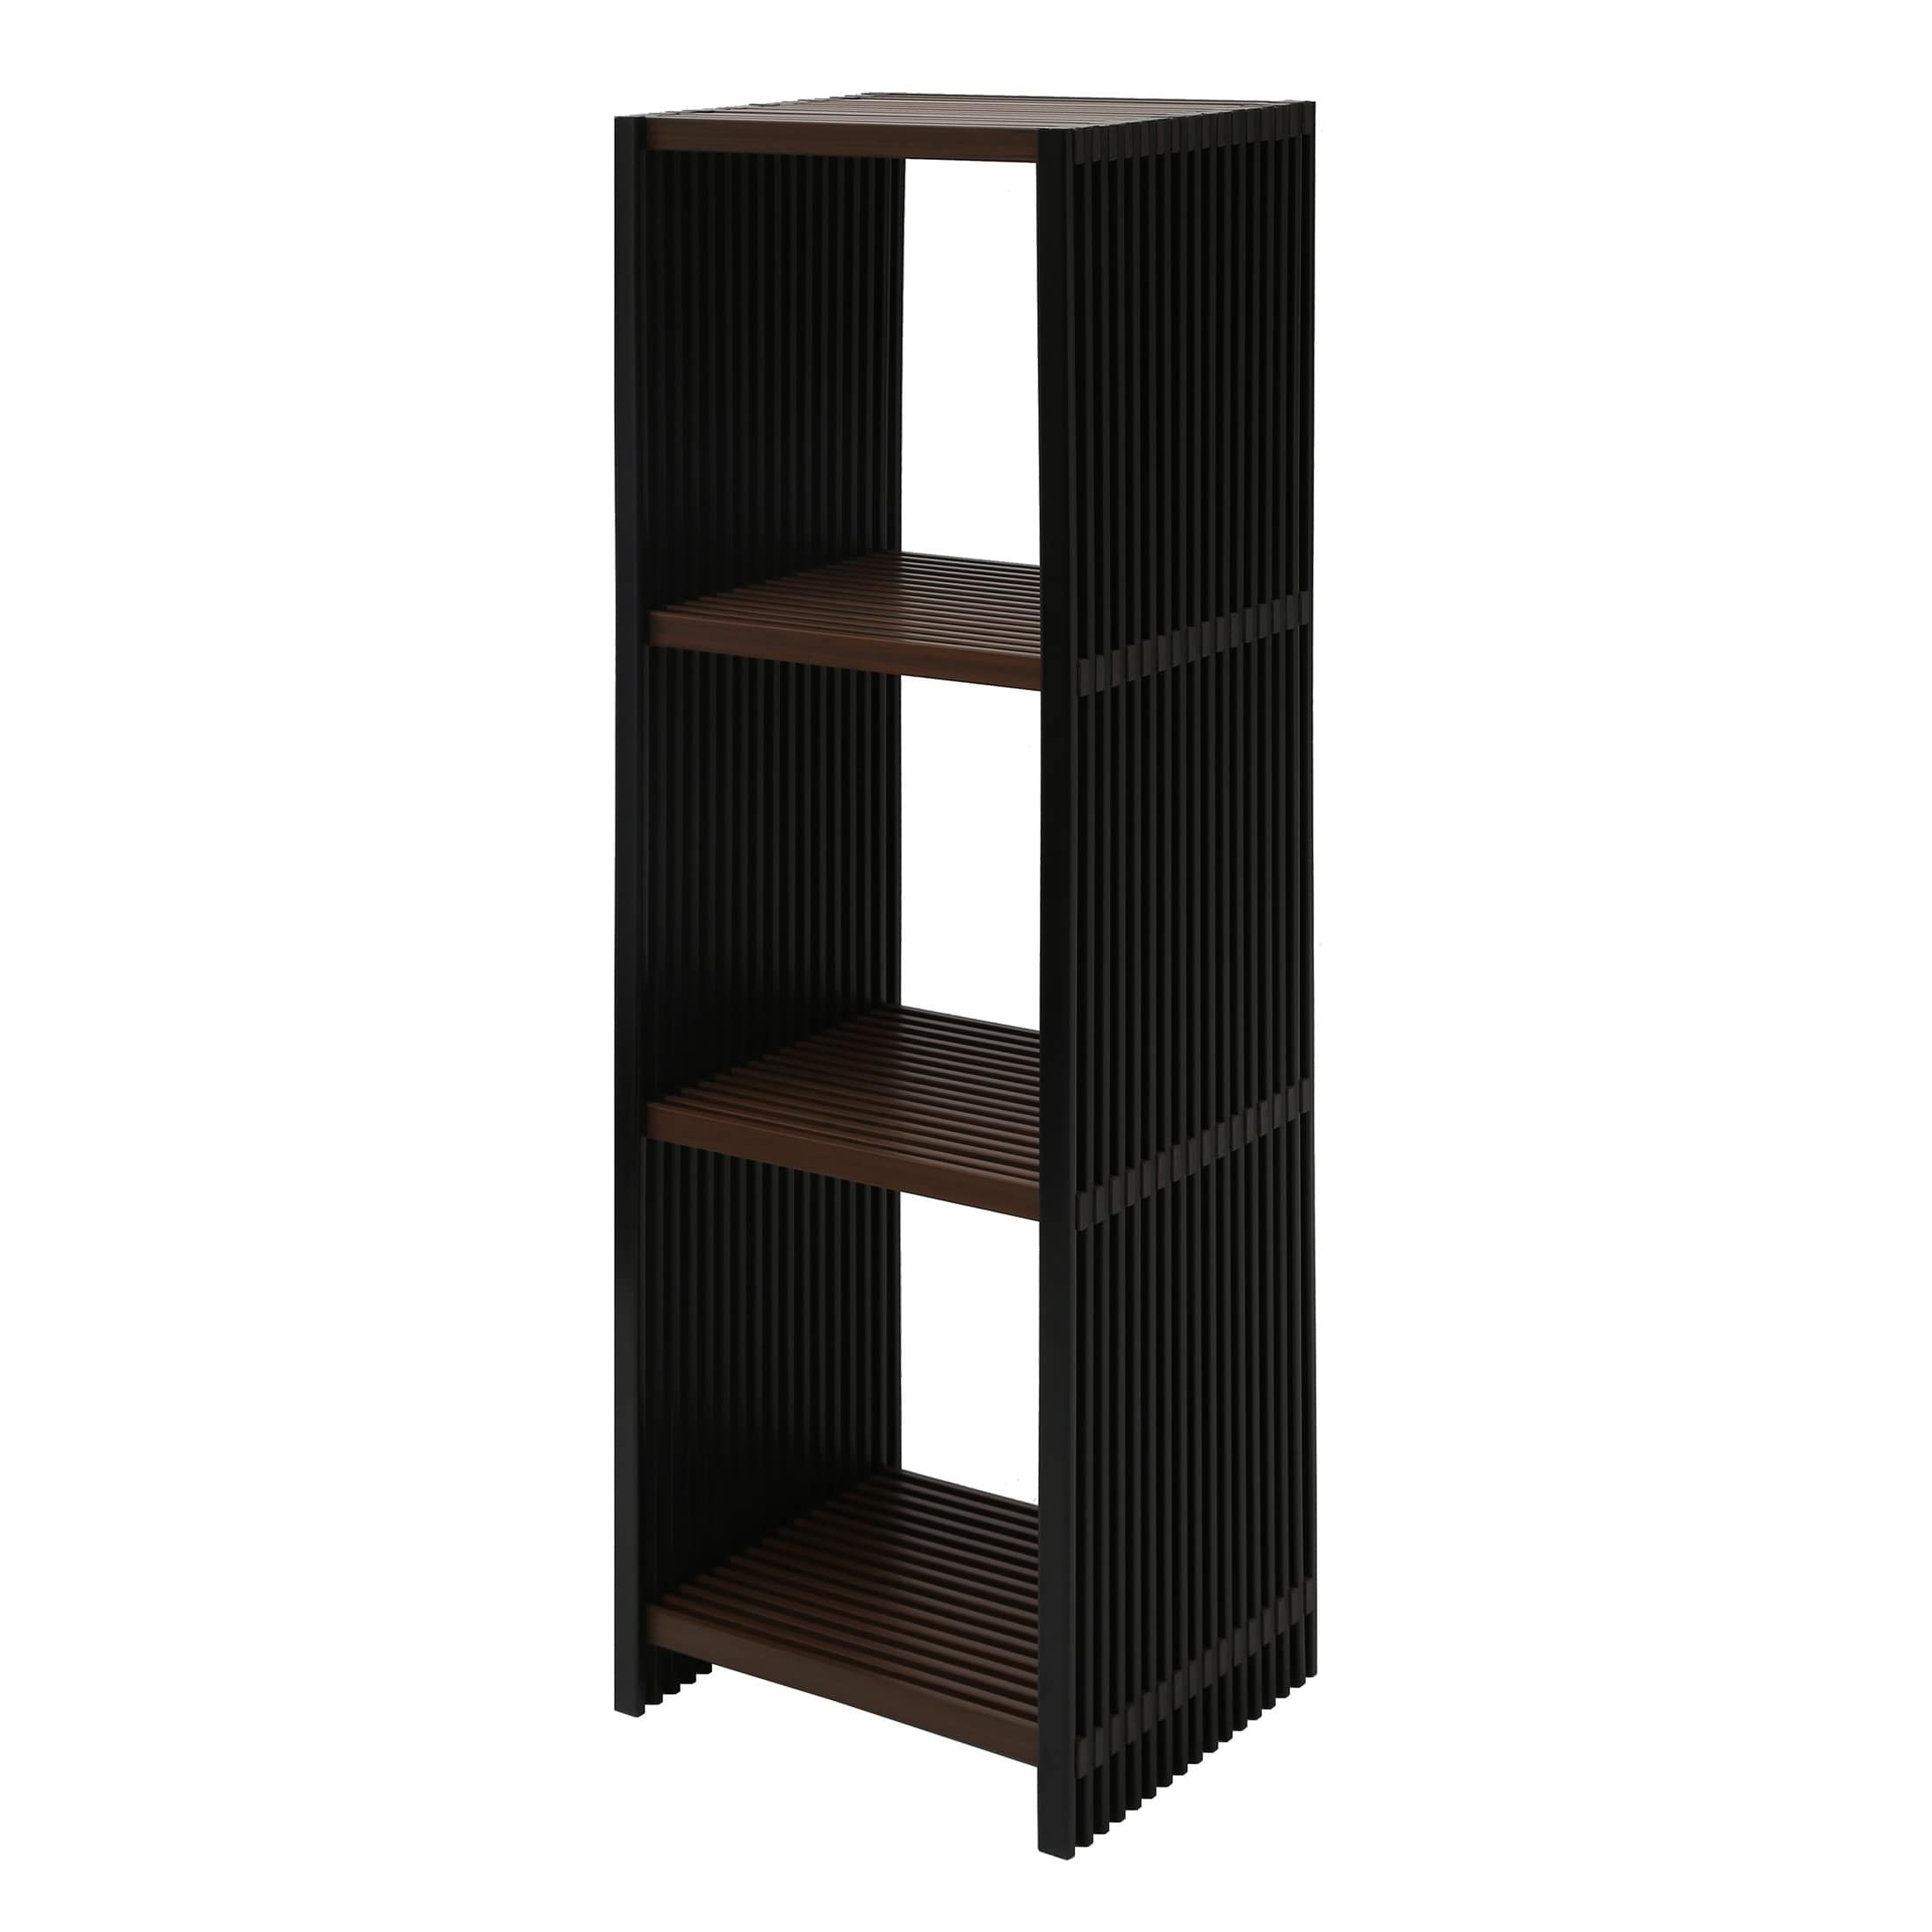 storage shelves amazing target wood bookcase bookcases cube and image black baskets cubed sale baking glass with furniture for